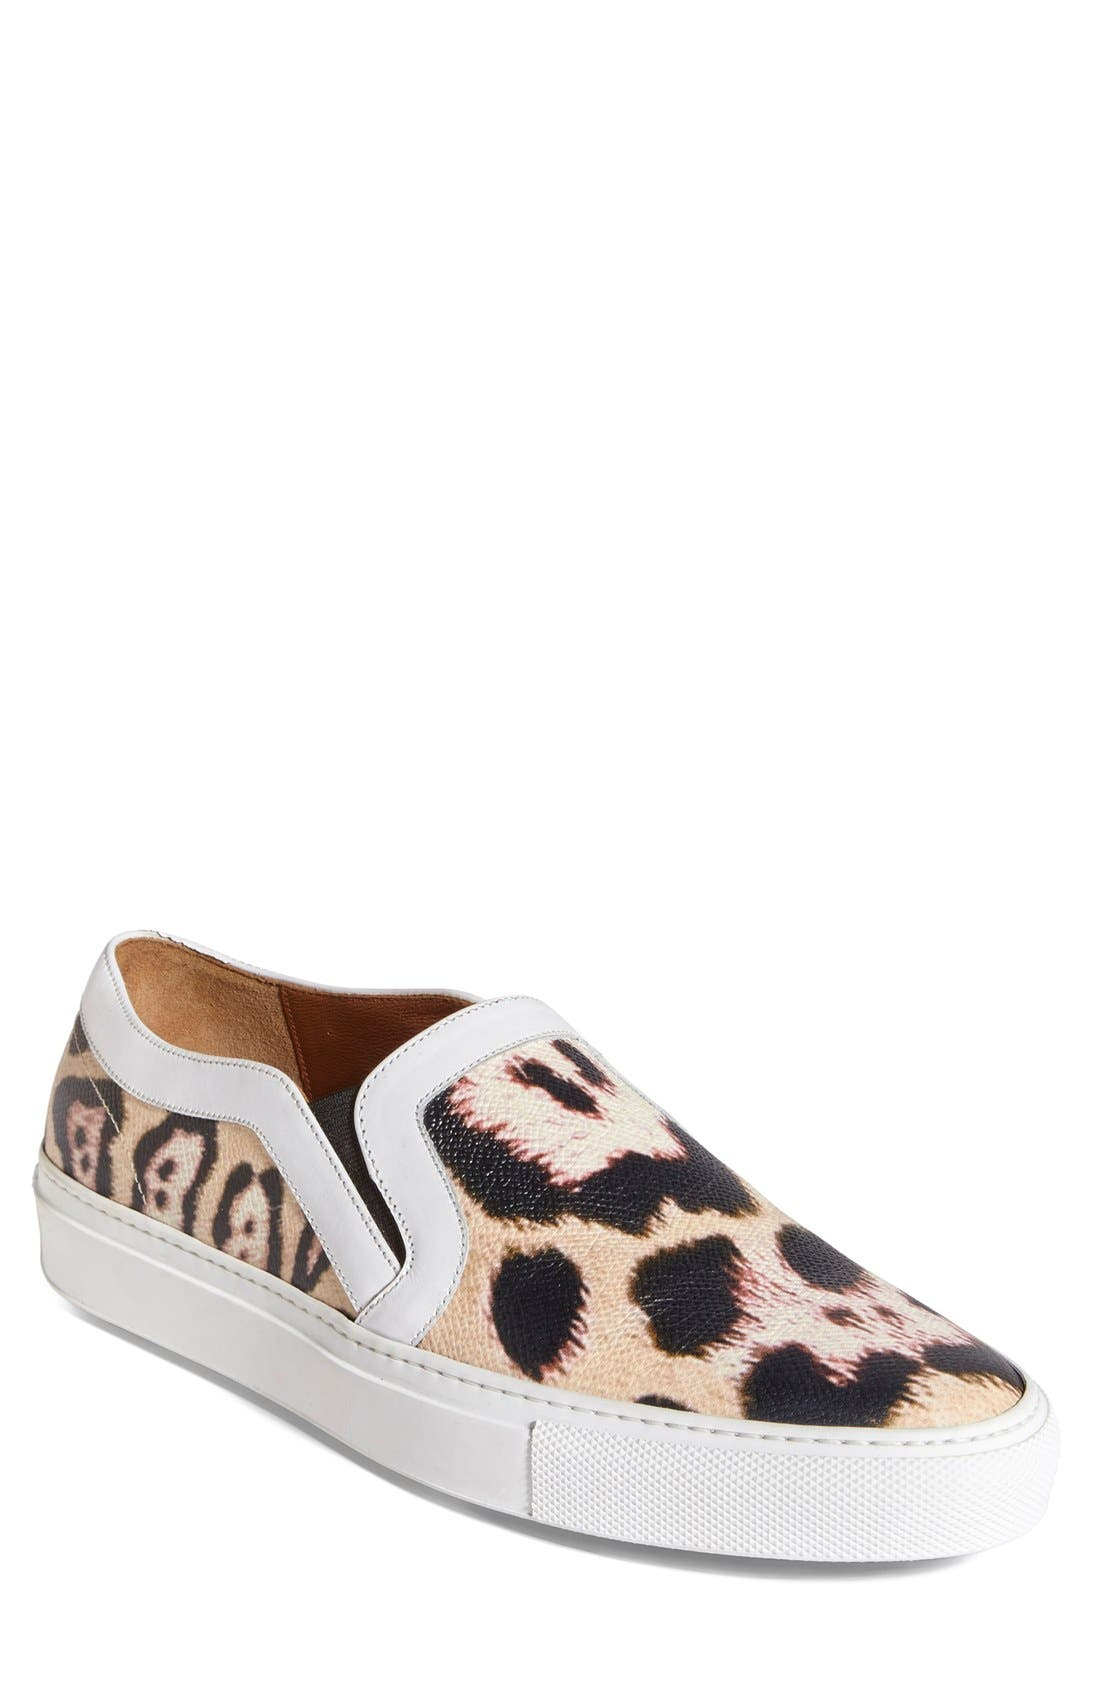 Main Image - Givenchy Leopard Print Skate Slip-On Sneaker (Women)